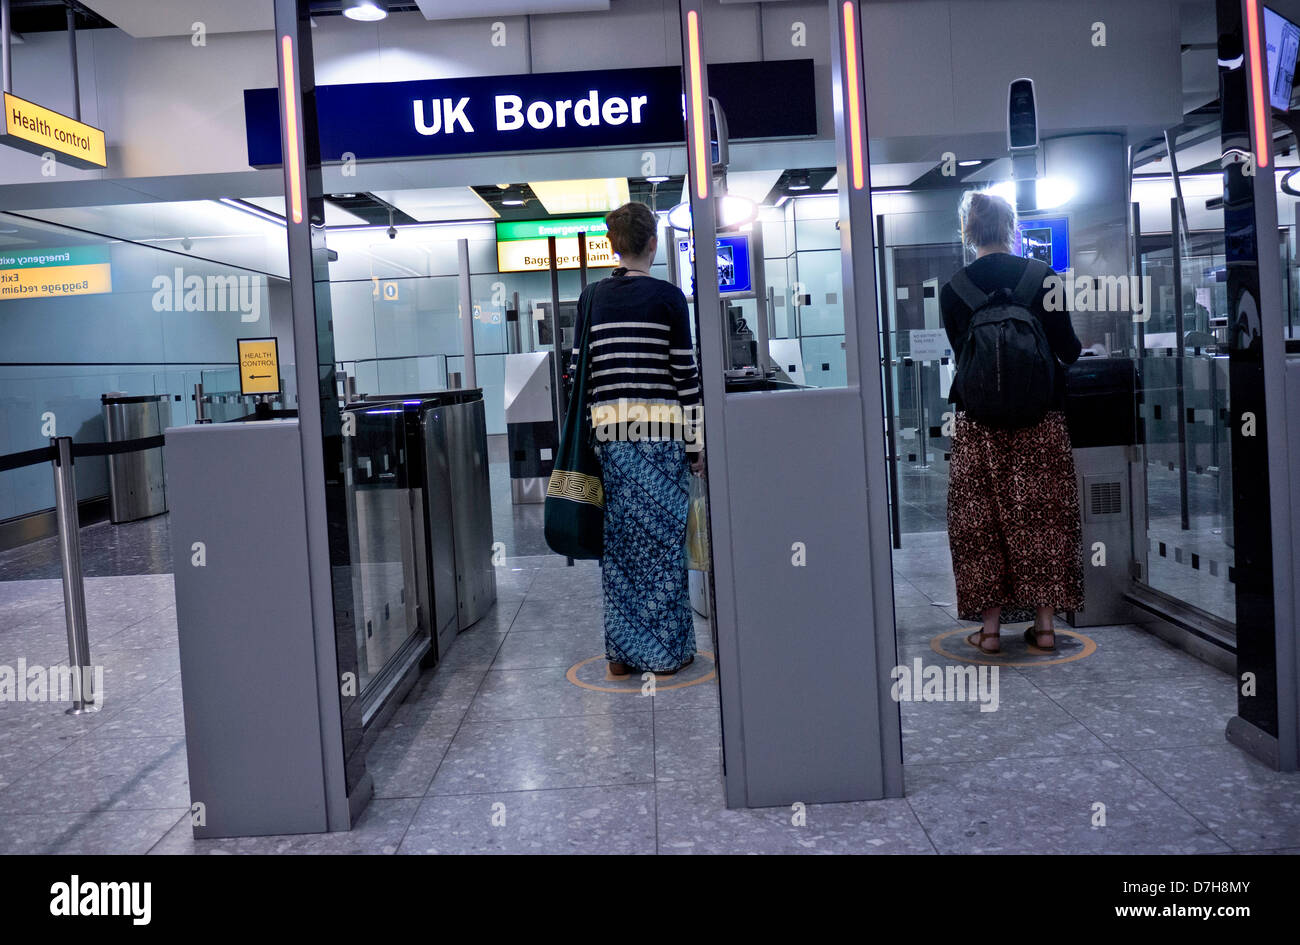 Stock Photo Uk Biometric Passport Border Control For Arriving Passengers At  London Heathrow Airport Terminal 3